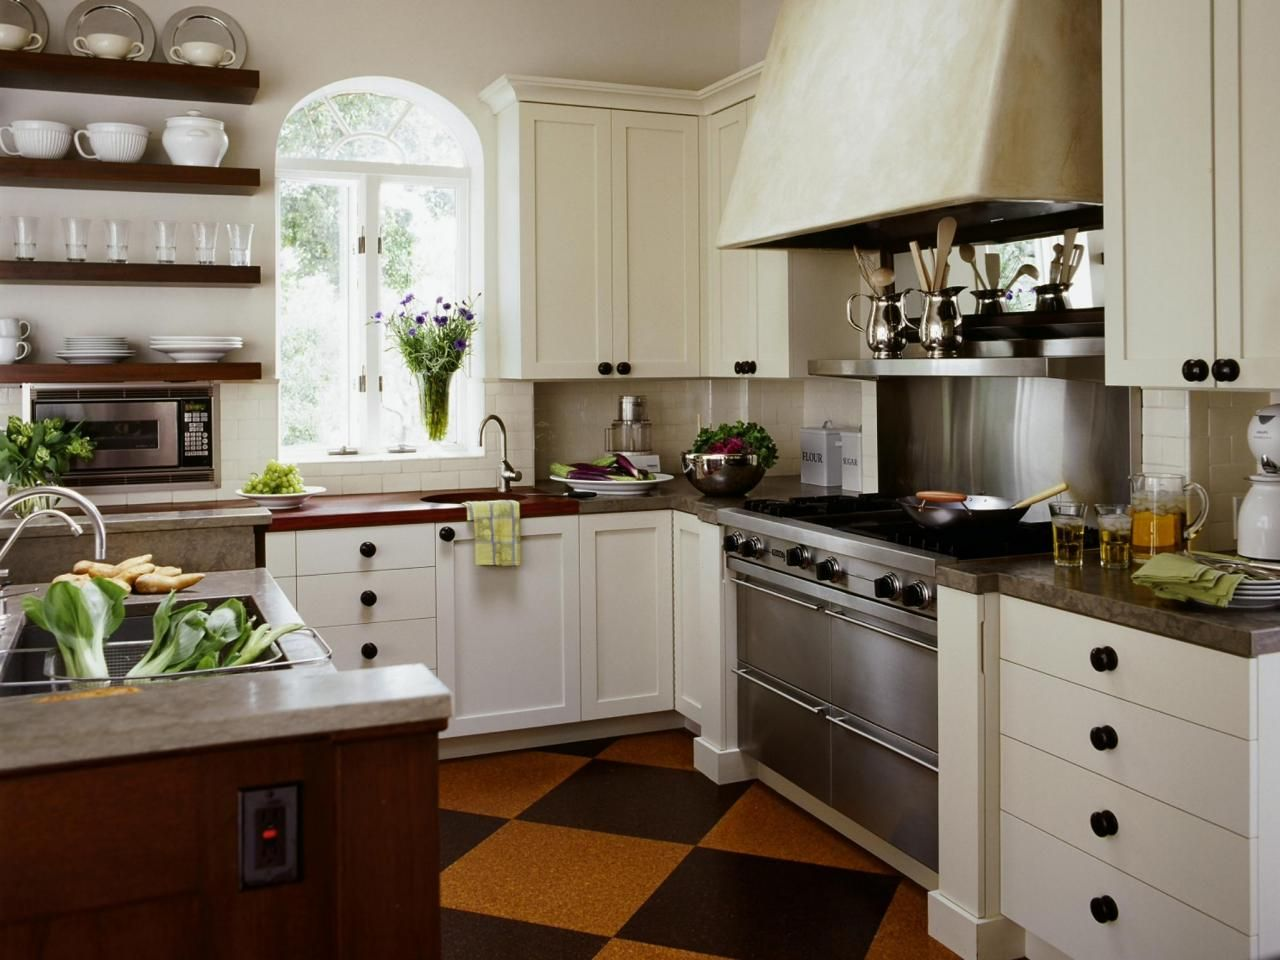 15 Design Trends From The 1990 S We Re Totally Digging Right Now Country Kitchen Cabinets Country Cottage Kitchen Country Style Kitchen